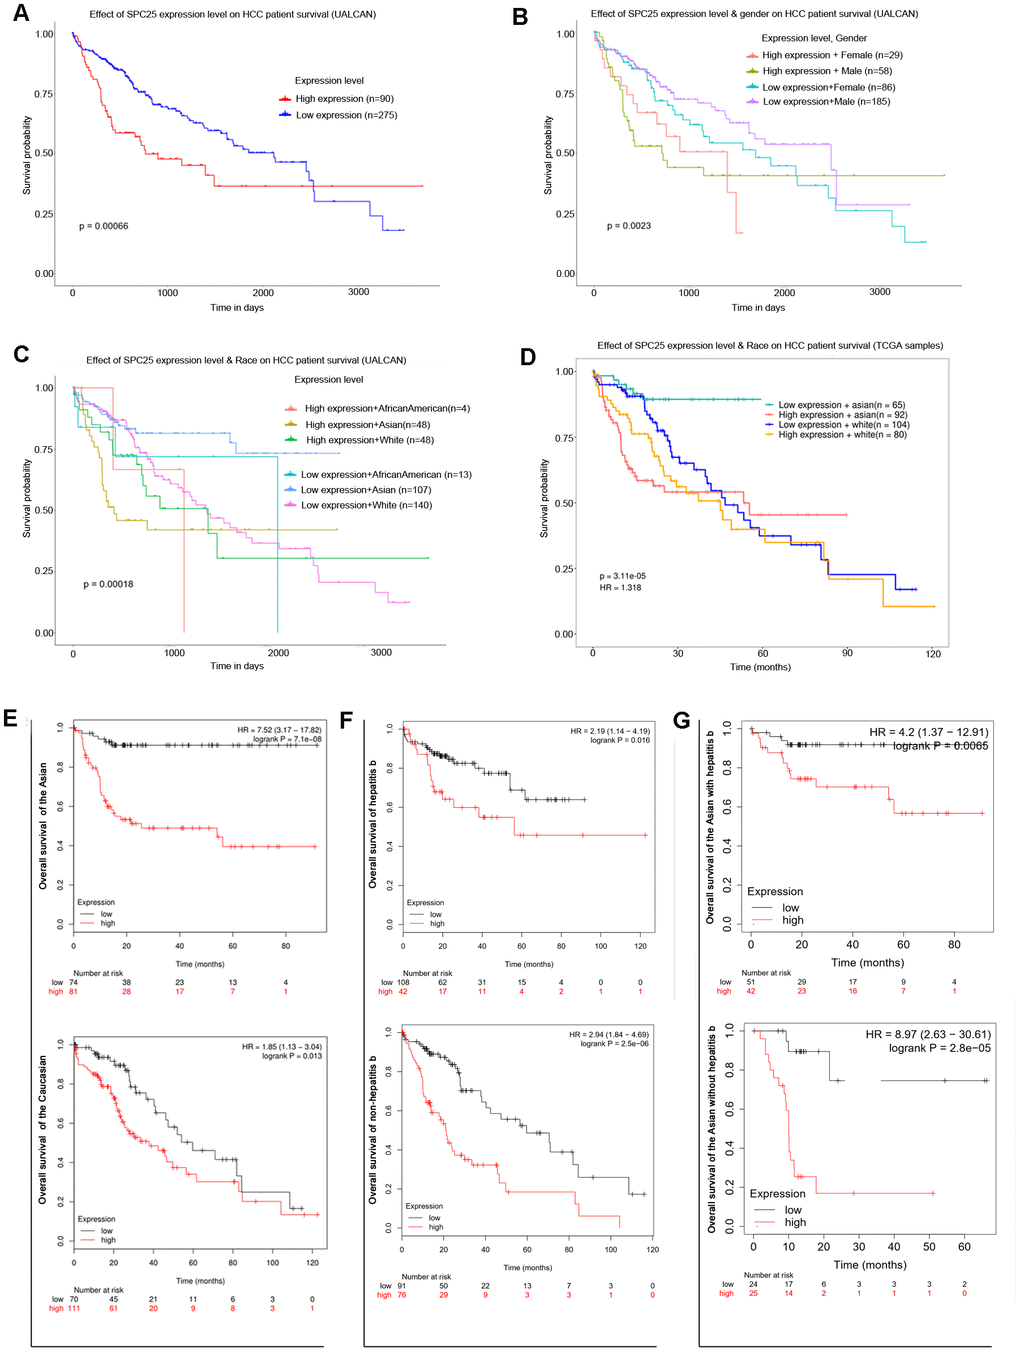 Prognostic role of SPC25 mRNA in HCC patients. (A) Effect of SPC25 expression level on HCC patient survival (UALCAN). (B) Effect of SPC25 expression level and gender on HCC patient survival (UALCAN). (C) Effect of SPC25 expression level and Race on HCC patient survival (UALCAN). (D) Effect of SPC25 expression level and Race on HCC patient survival (TCGA samples). (E) Subgroup overall survival analysis of SPC25 mRNA level in Asian or Caucasian HCC patients. (F) Subgroup overall survival analysis of SPC25 mRNA level in HCC patients with or without hepatitis b. (G) Subgroup overall survival analysis of SPC25 mRNA level in Asian HCC patients with or without hepatitis b.